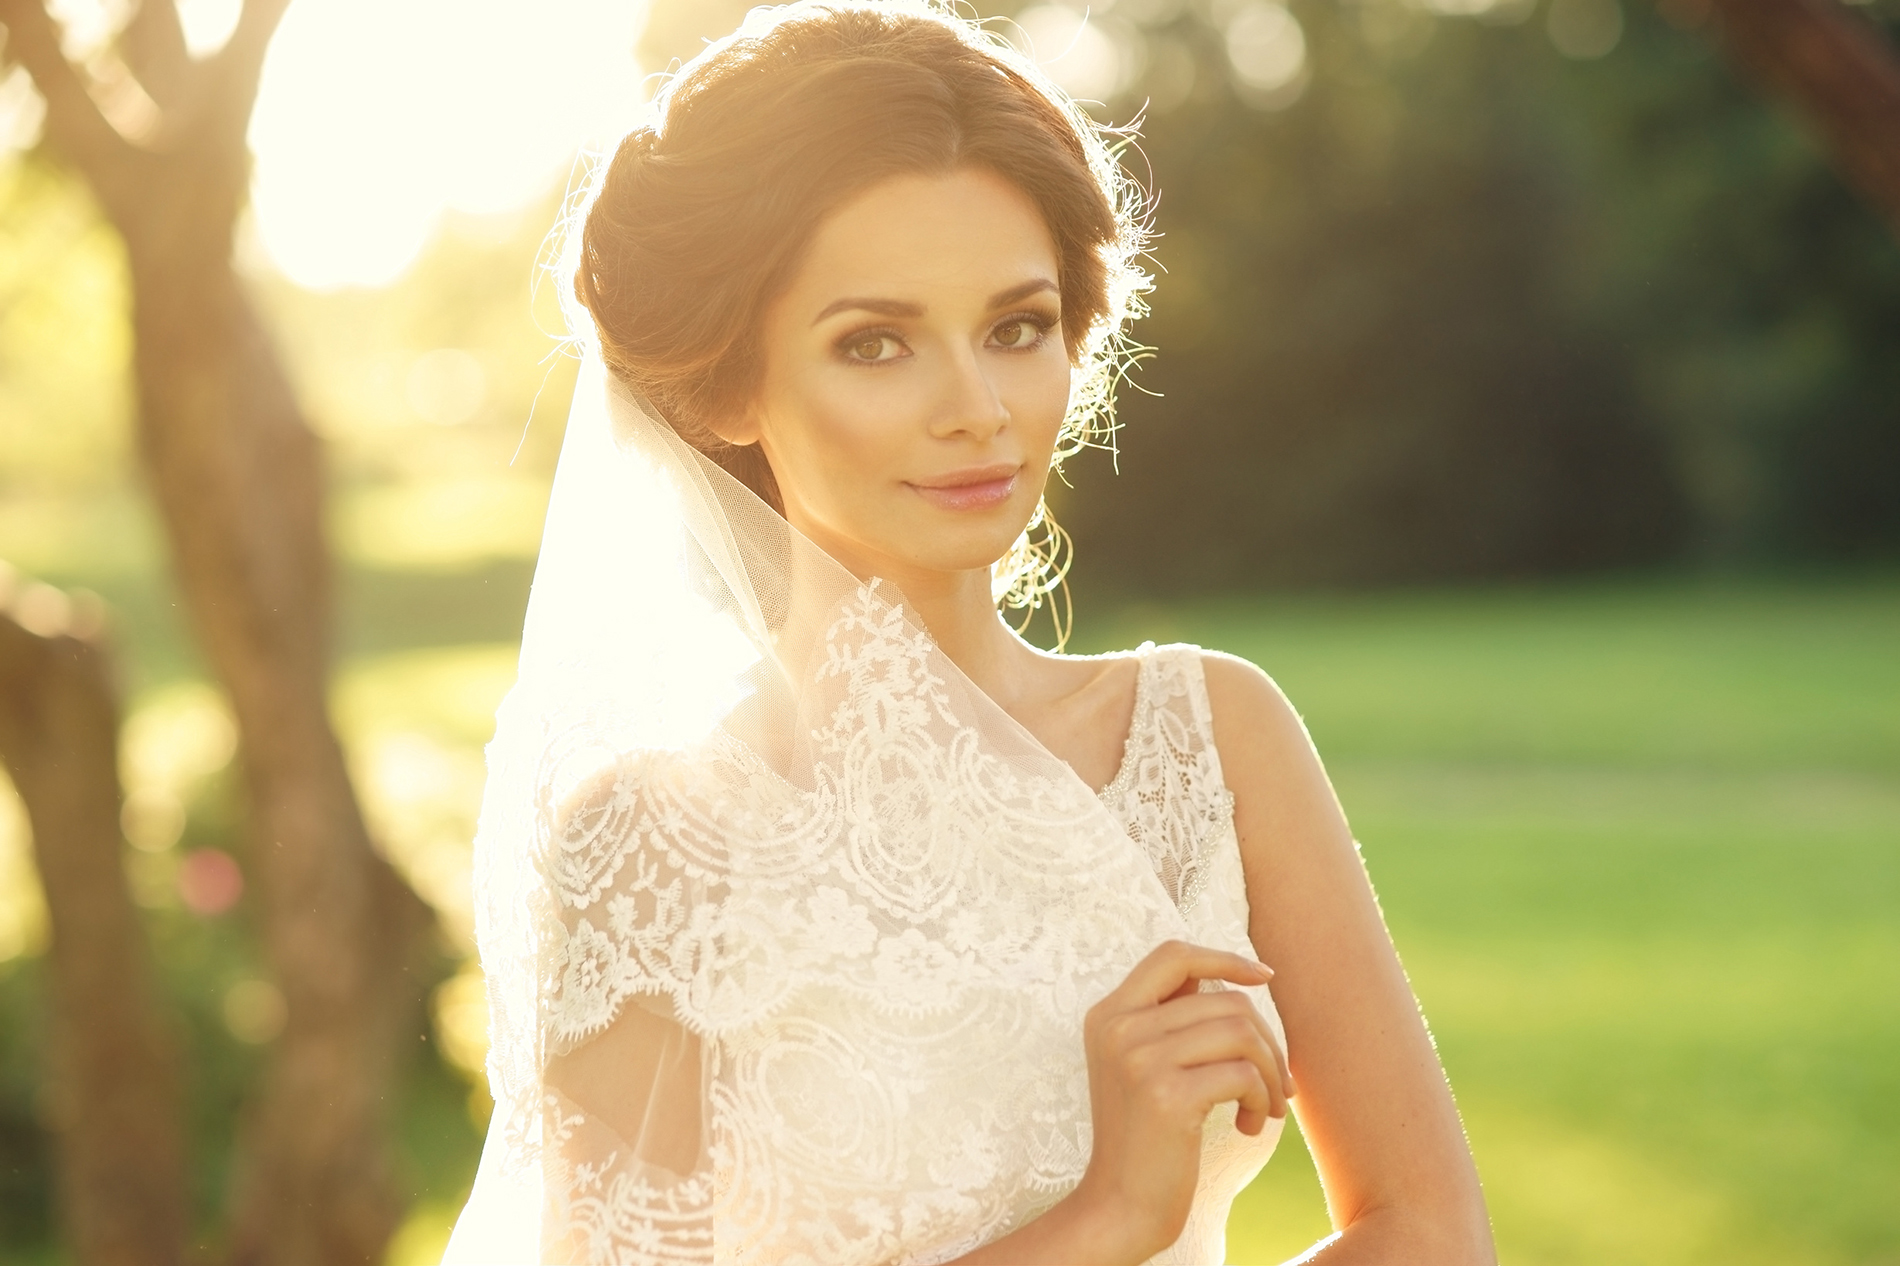 Bride in white beautiful surface relief 53464